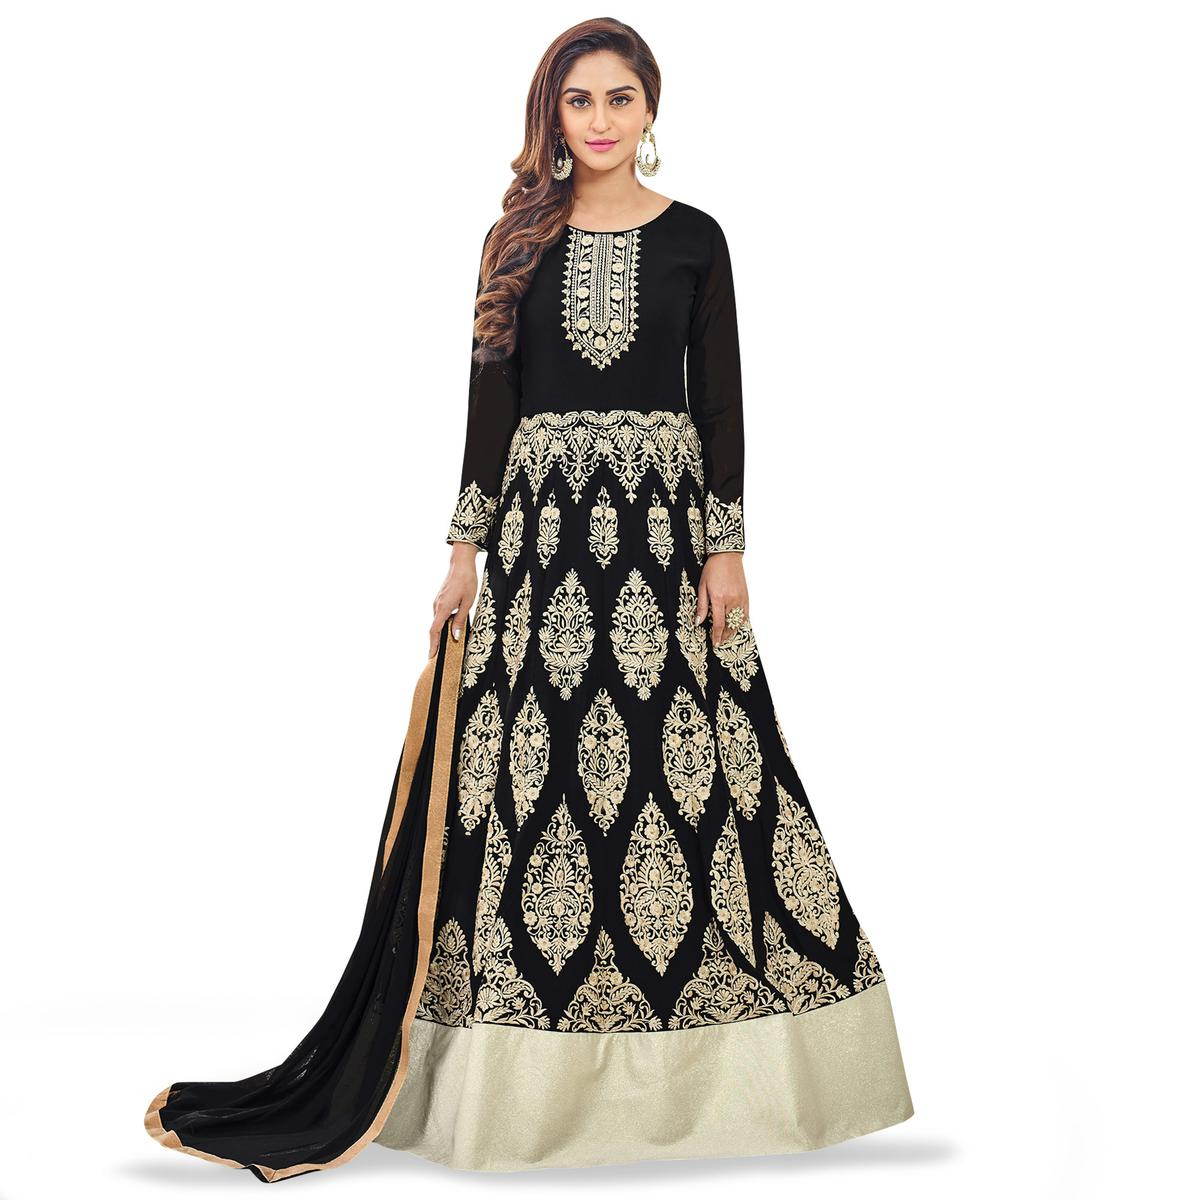 61fb5d8df93f Buy Marvellous Black Colored Party Wear Embroidered Georgette Anarkali Suit  online India, Best Prices, Reviews - Peachmode